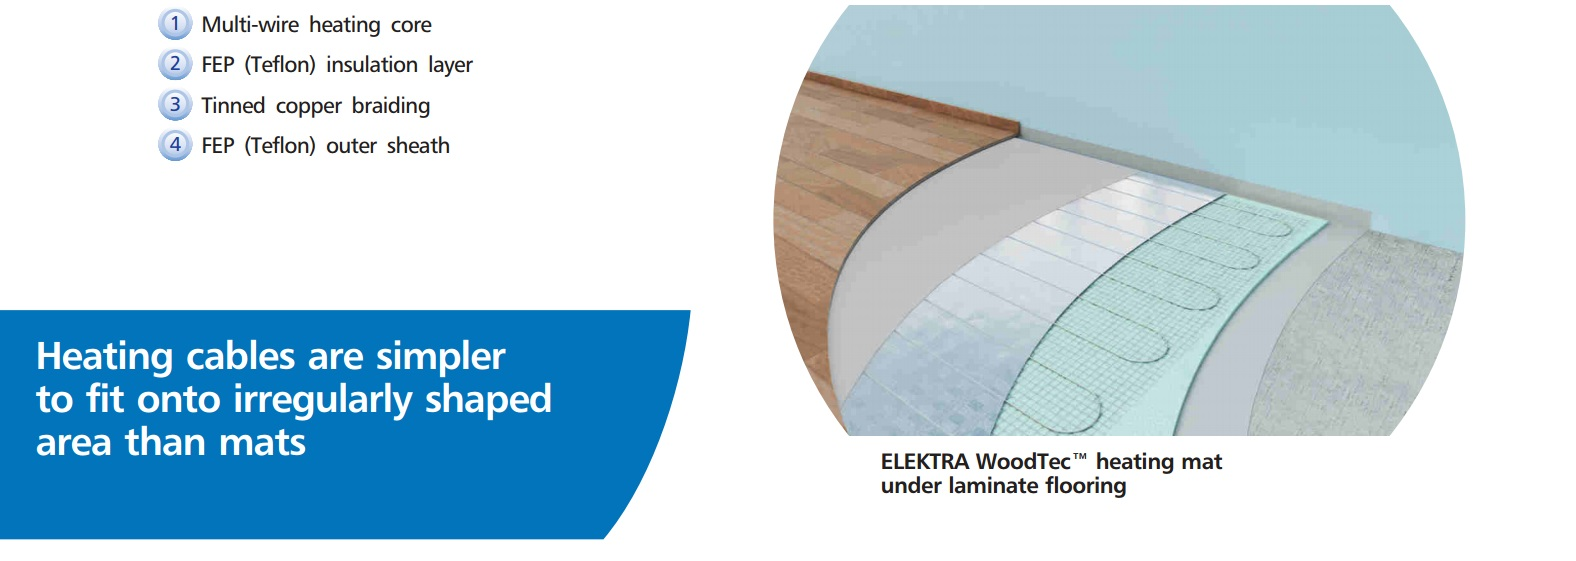 Electrical Underfloor Heating - Turkey  - ELEKTRA  WoodTec OTD2 1999